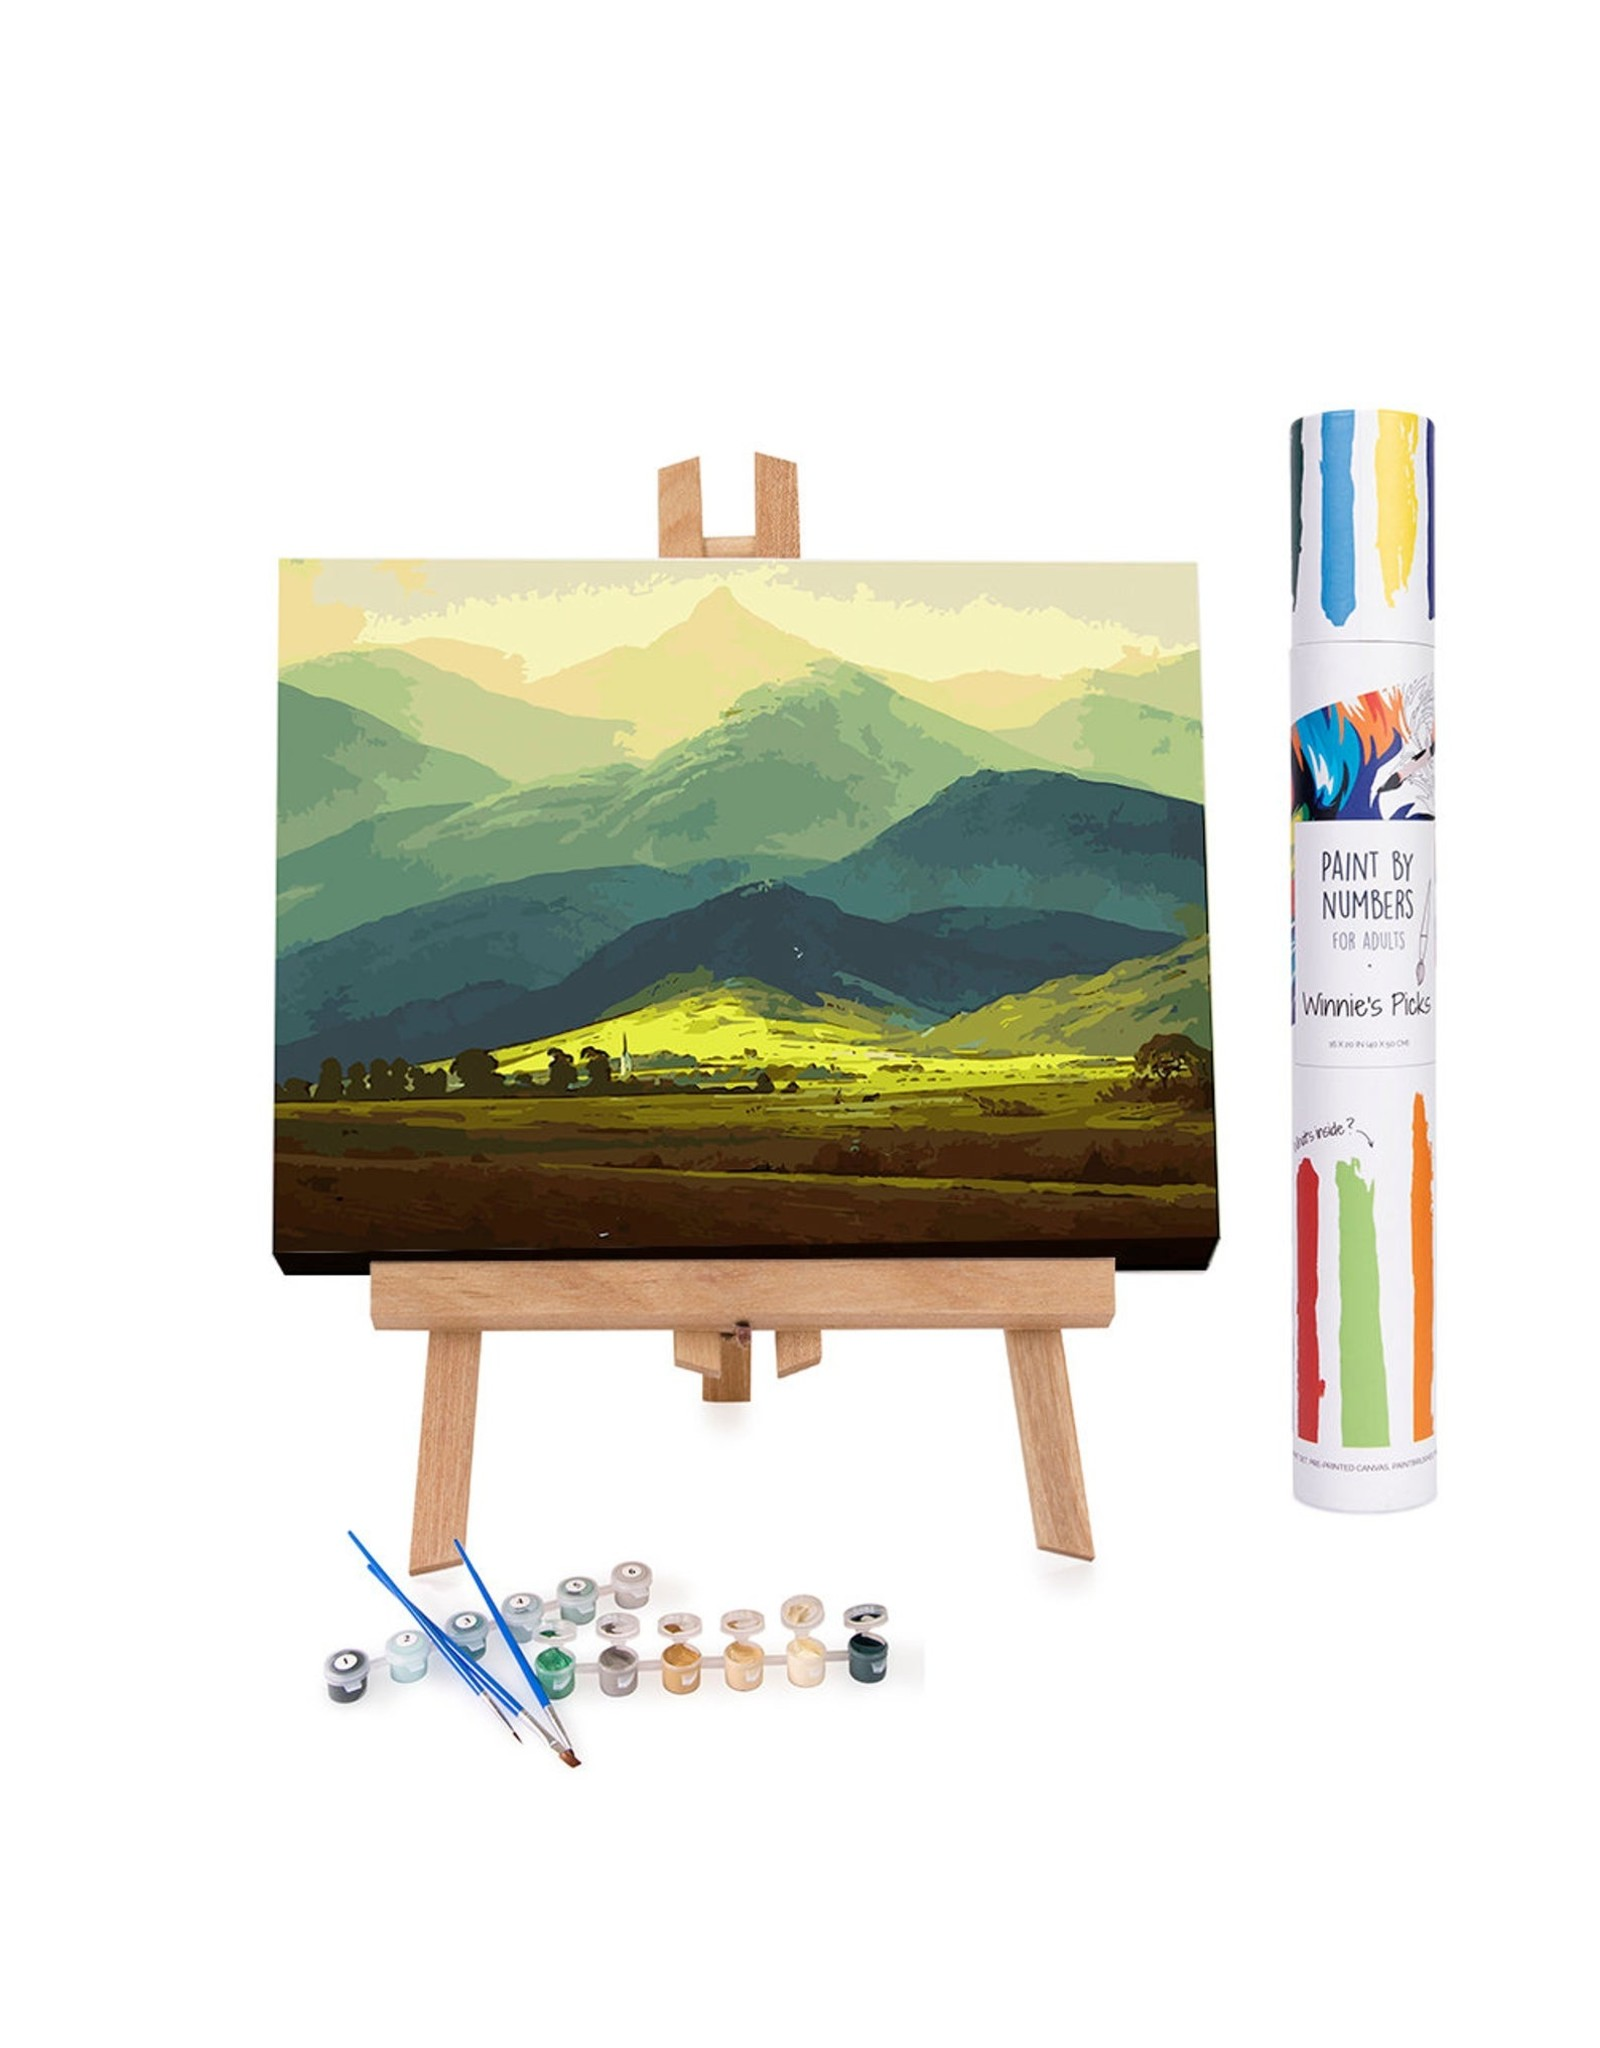 Winnie's Picks Paint by Numbers- Scotland Highland's